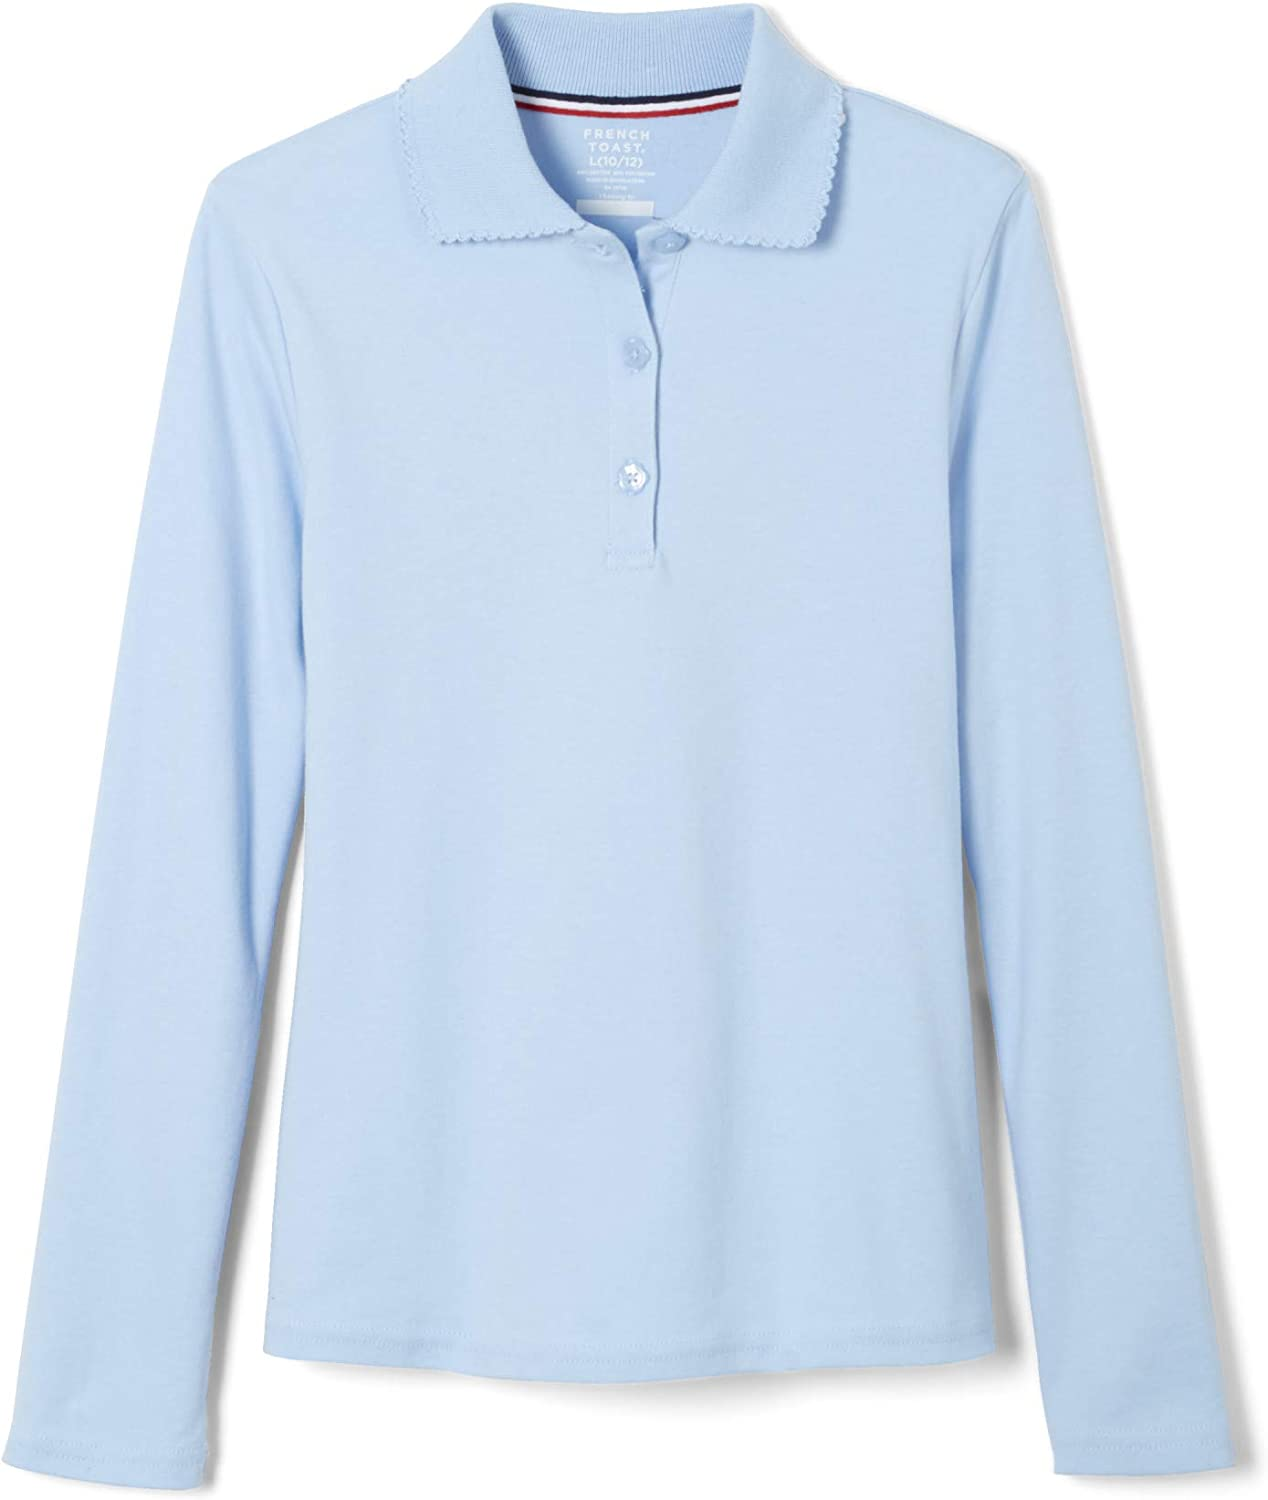 French Toast Girls Long Sleeve Interlock Polo with Picot Collar